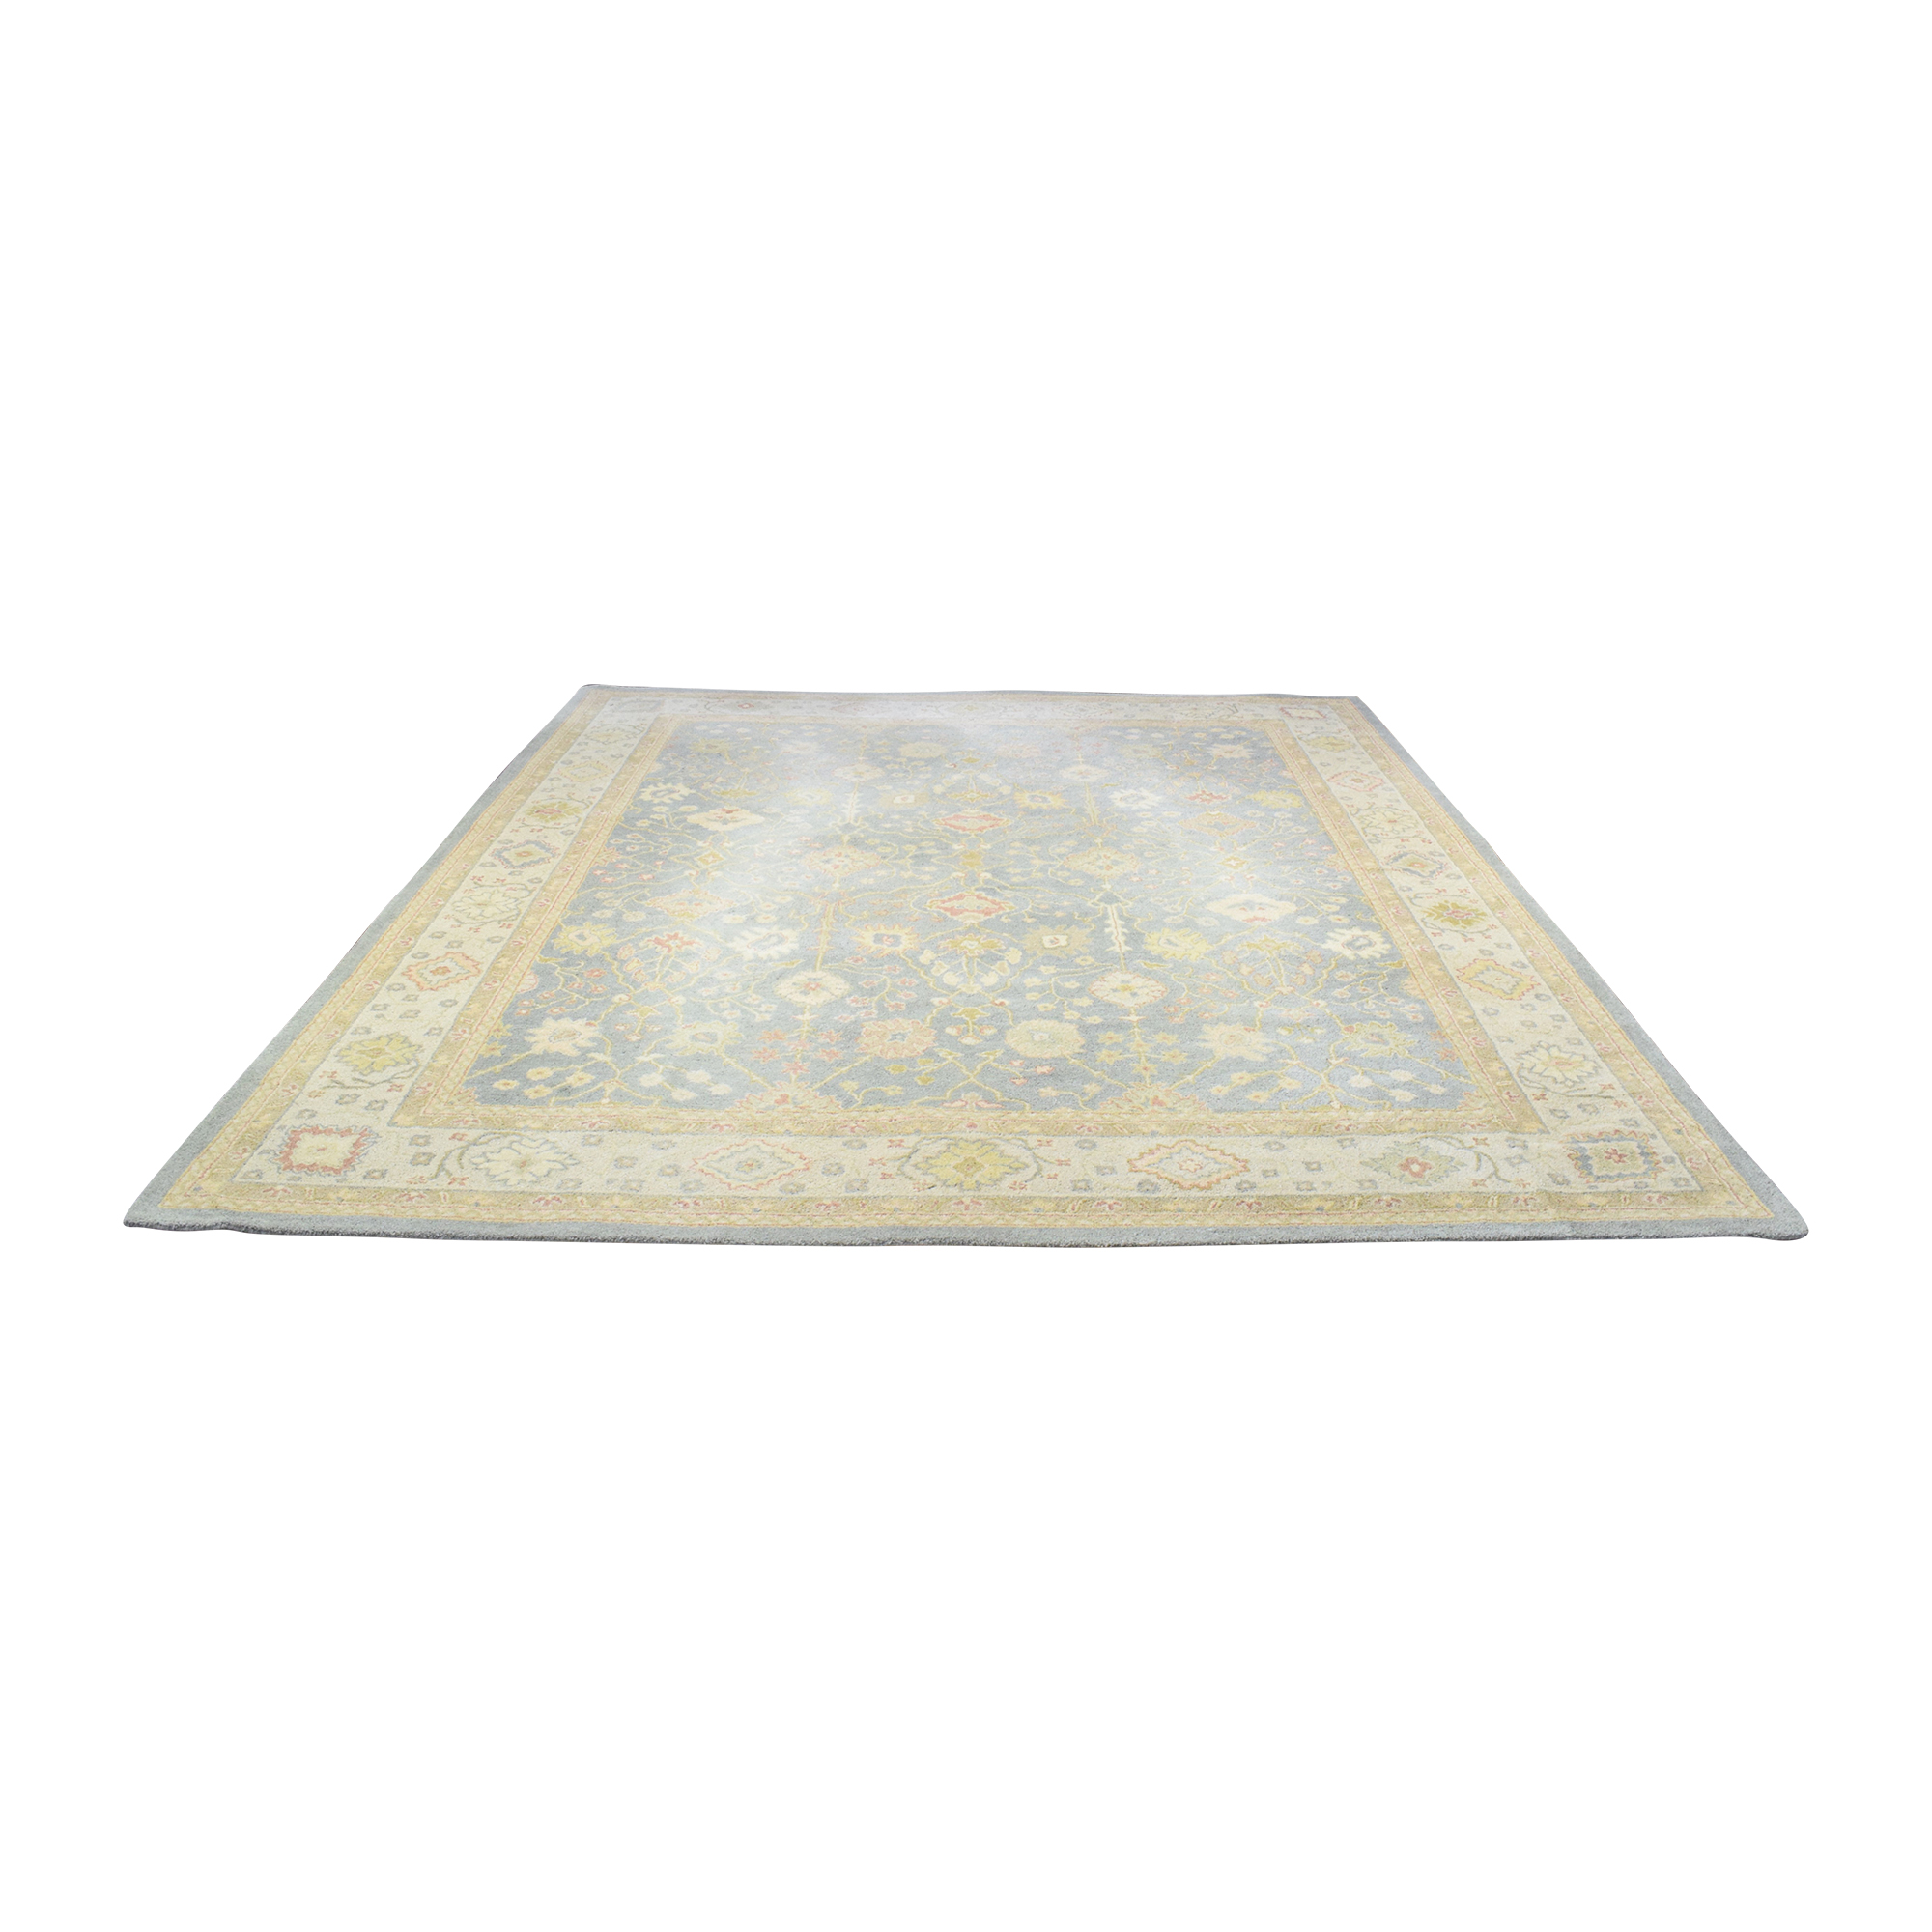 buy Safavieh Antiquities Collection Area Rug Safavieh Rugs